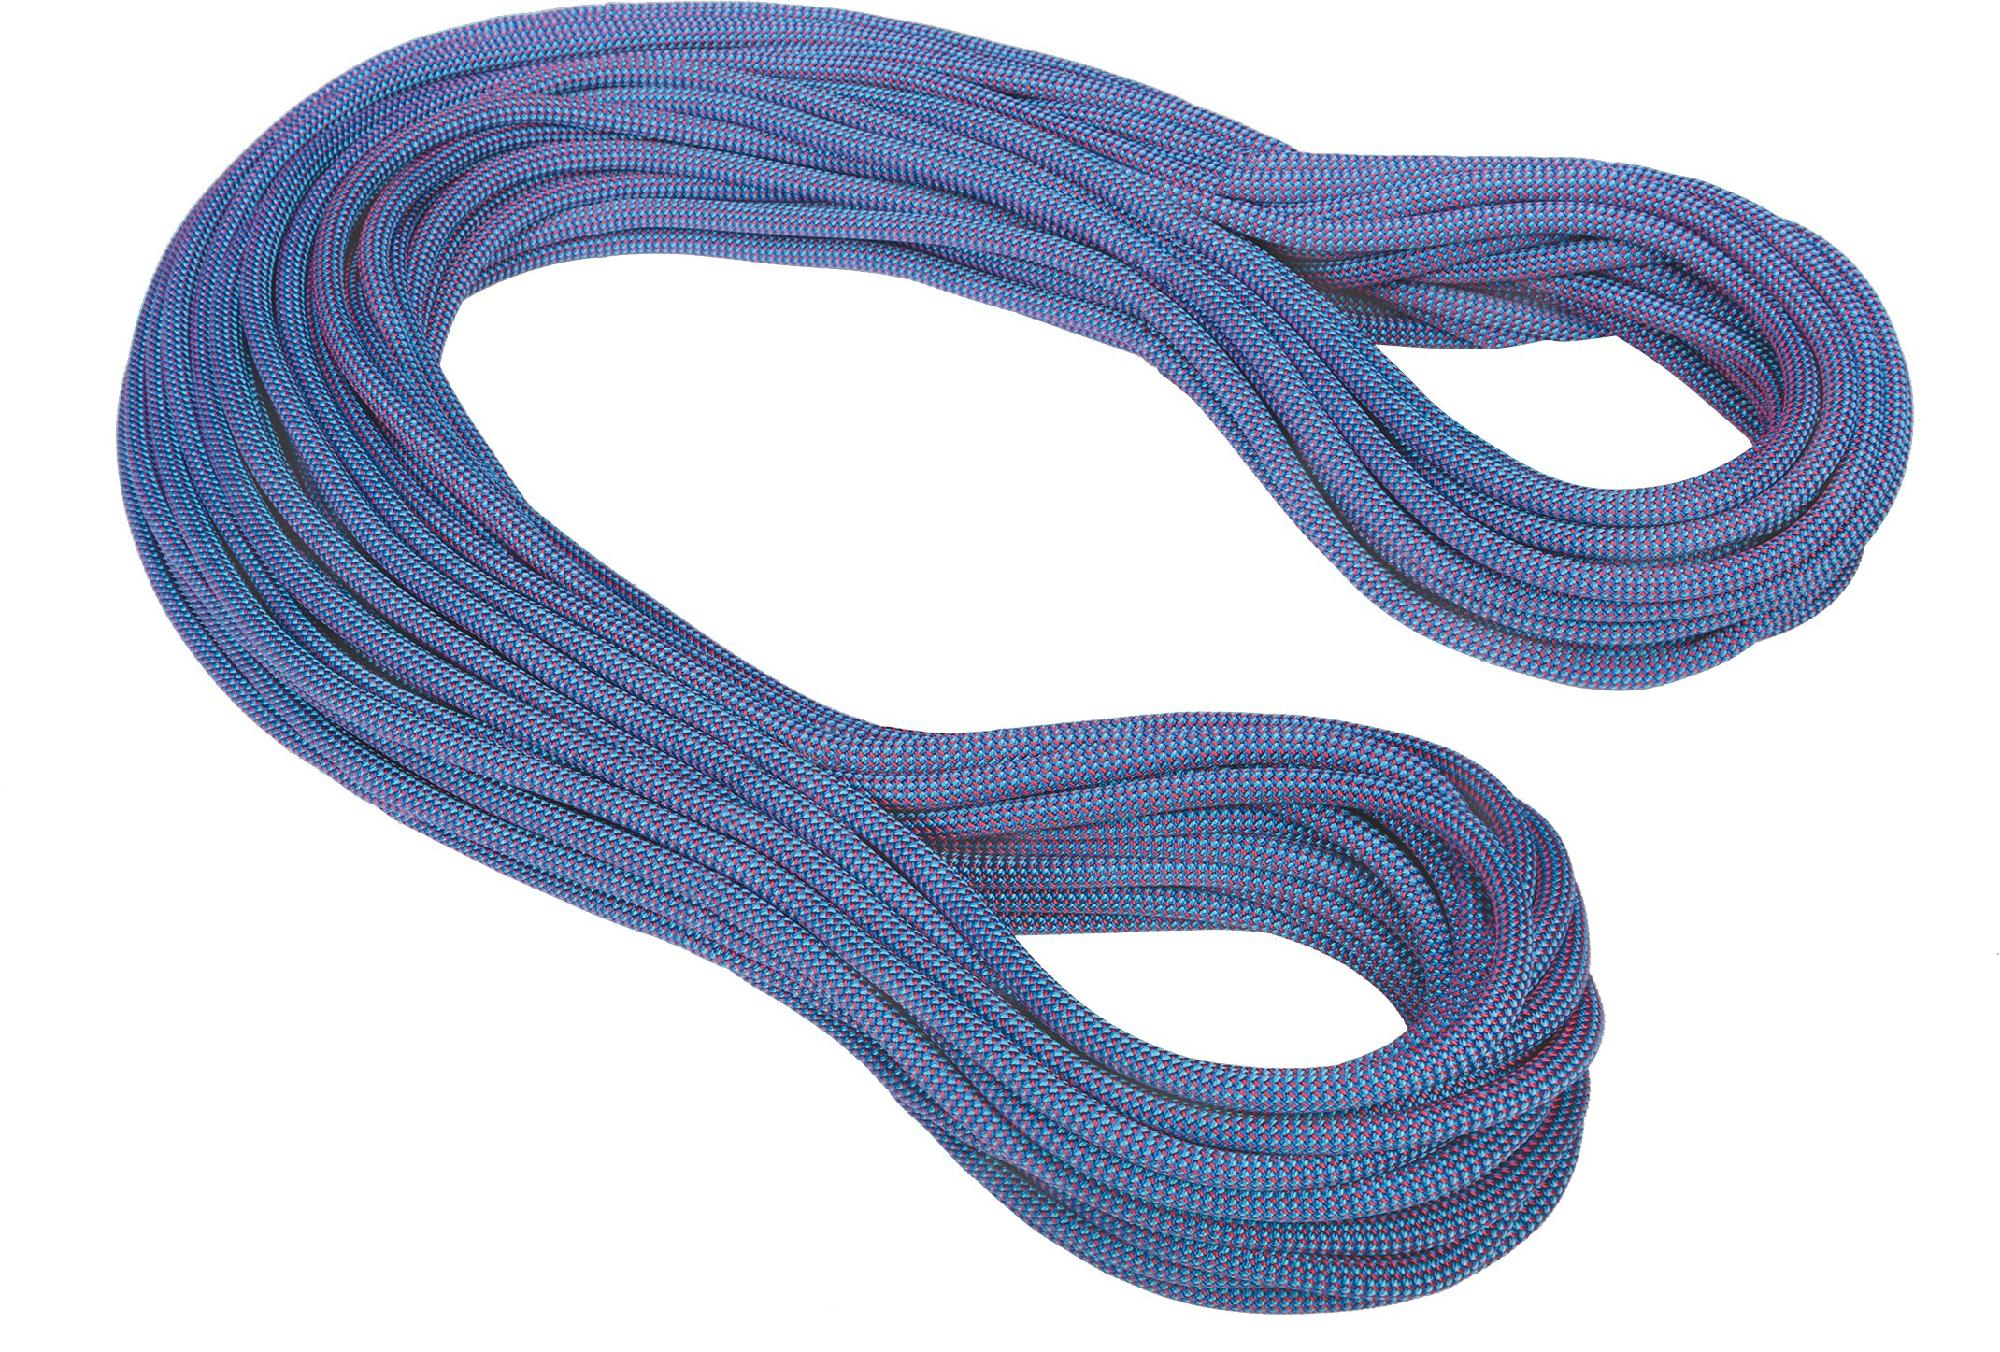 Mammut Eternity 9.8mm x 70m Dry Rope